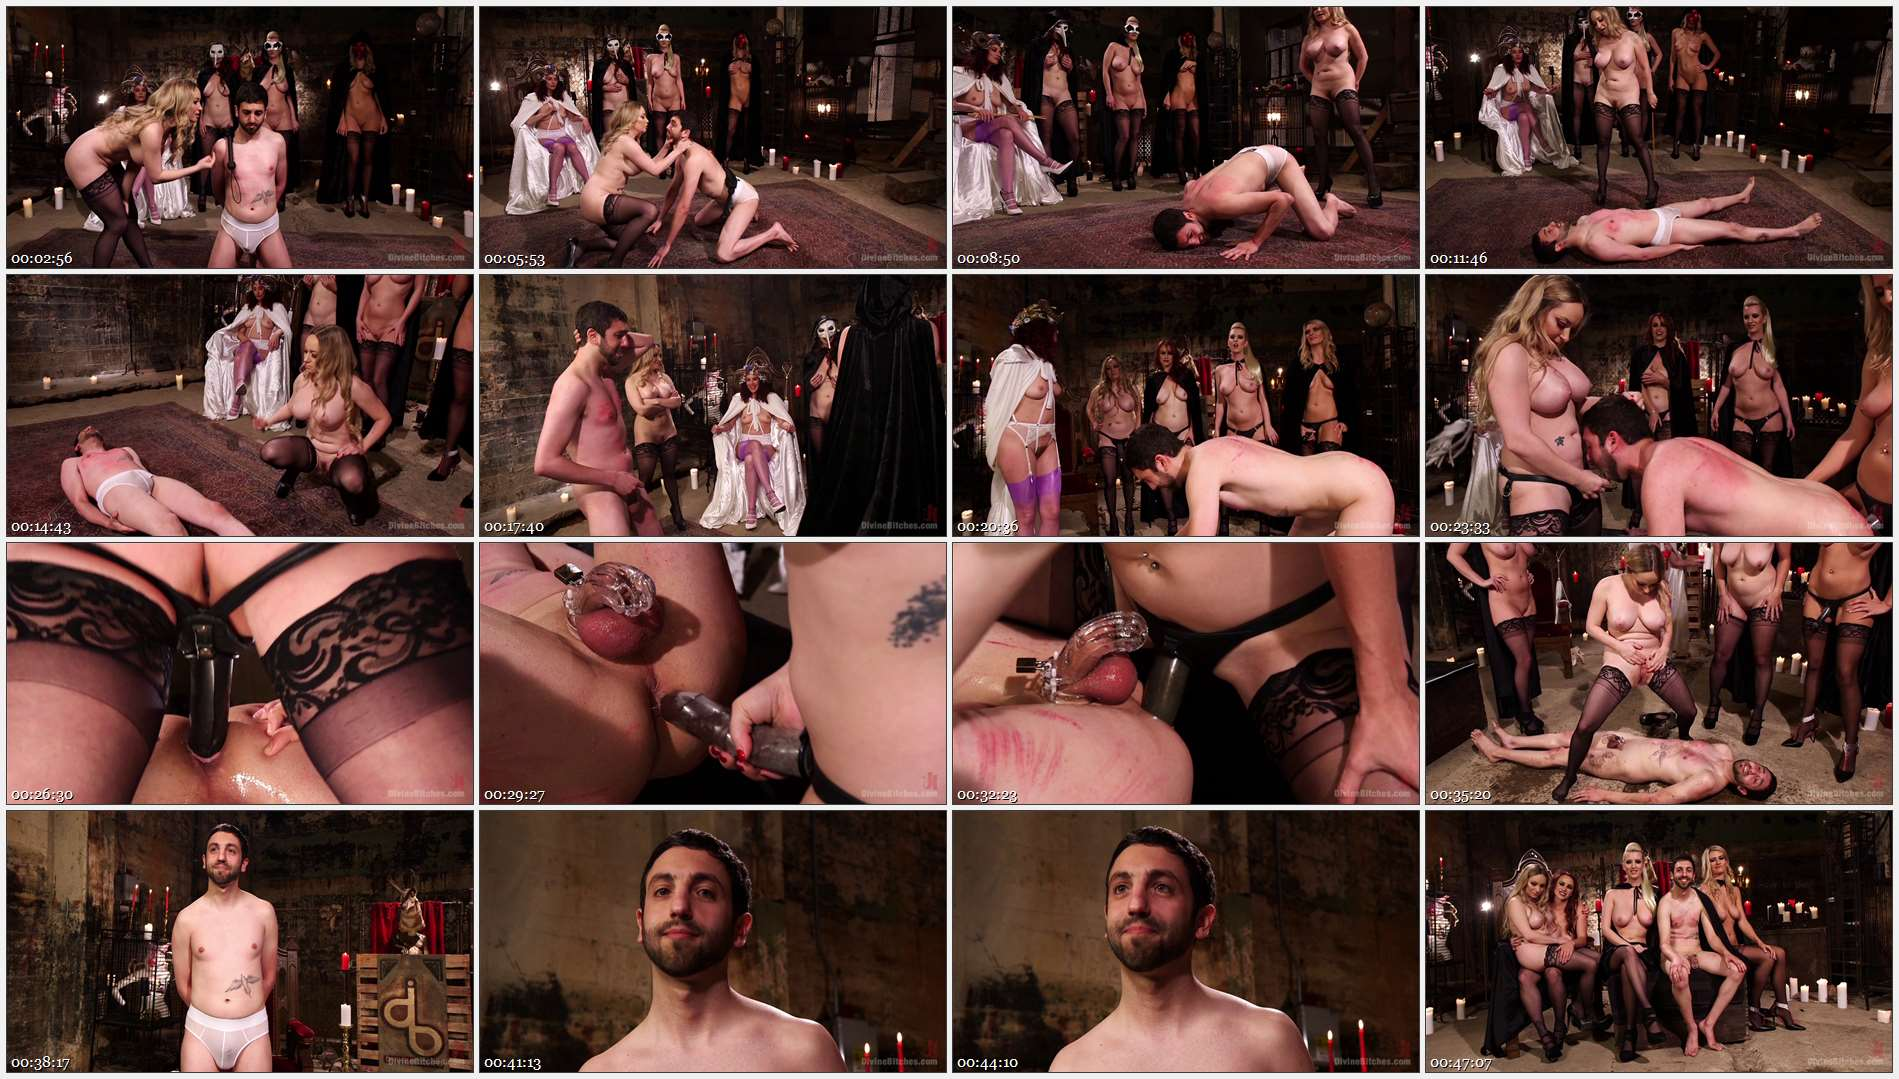 Bella Rossi – Jay West – Cherry Torn – Amanda Tate – Aiden Starr – Maitresse Madeline Marlowe – The Secret Femdom Society: Territorial Pissings 